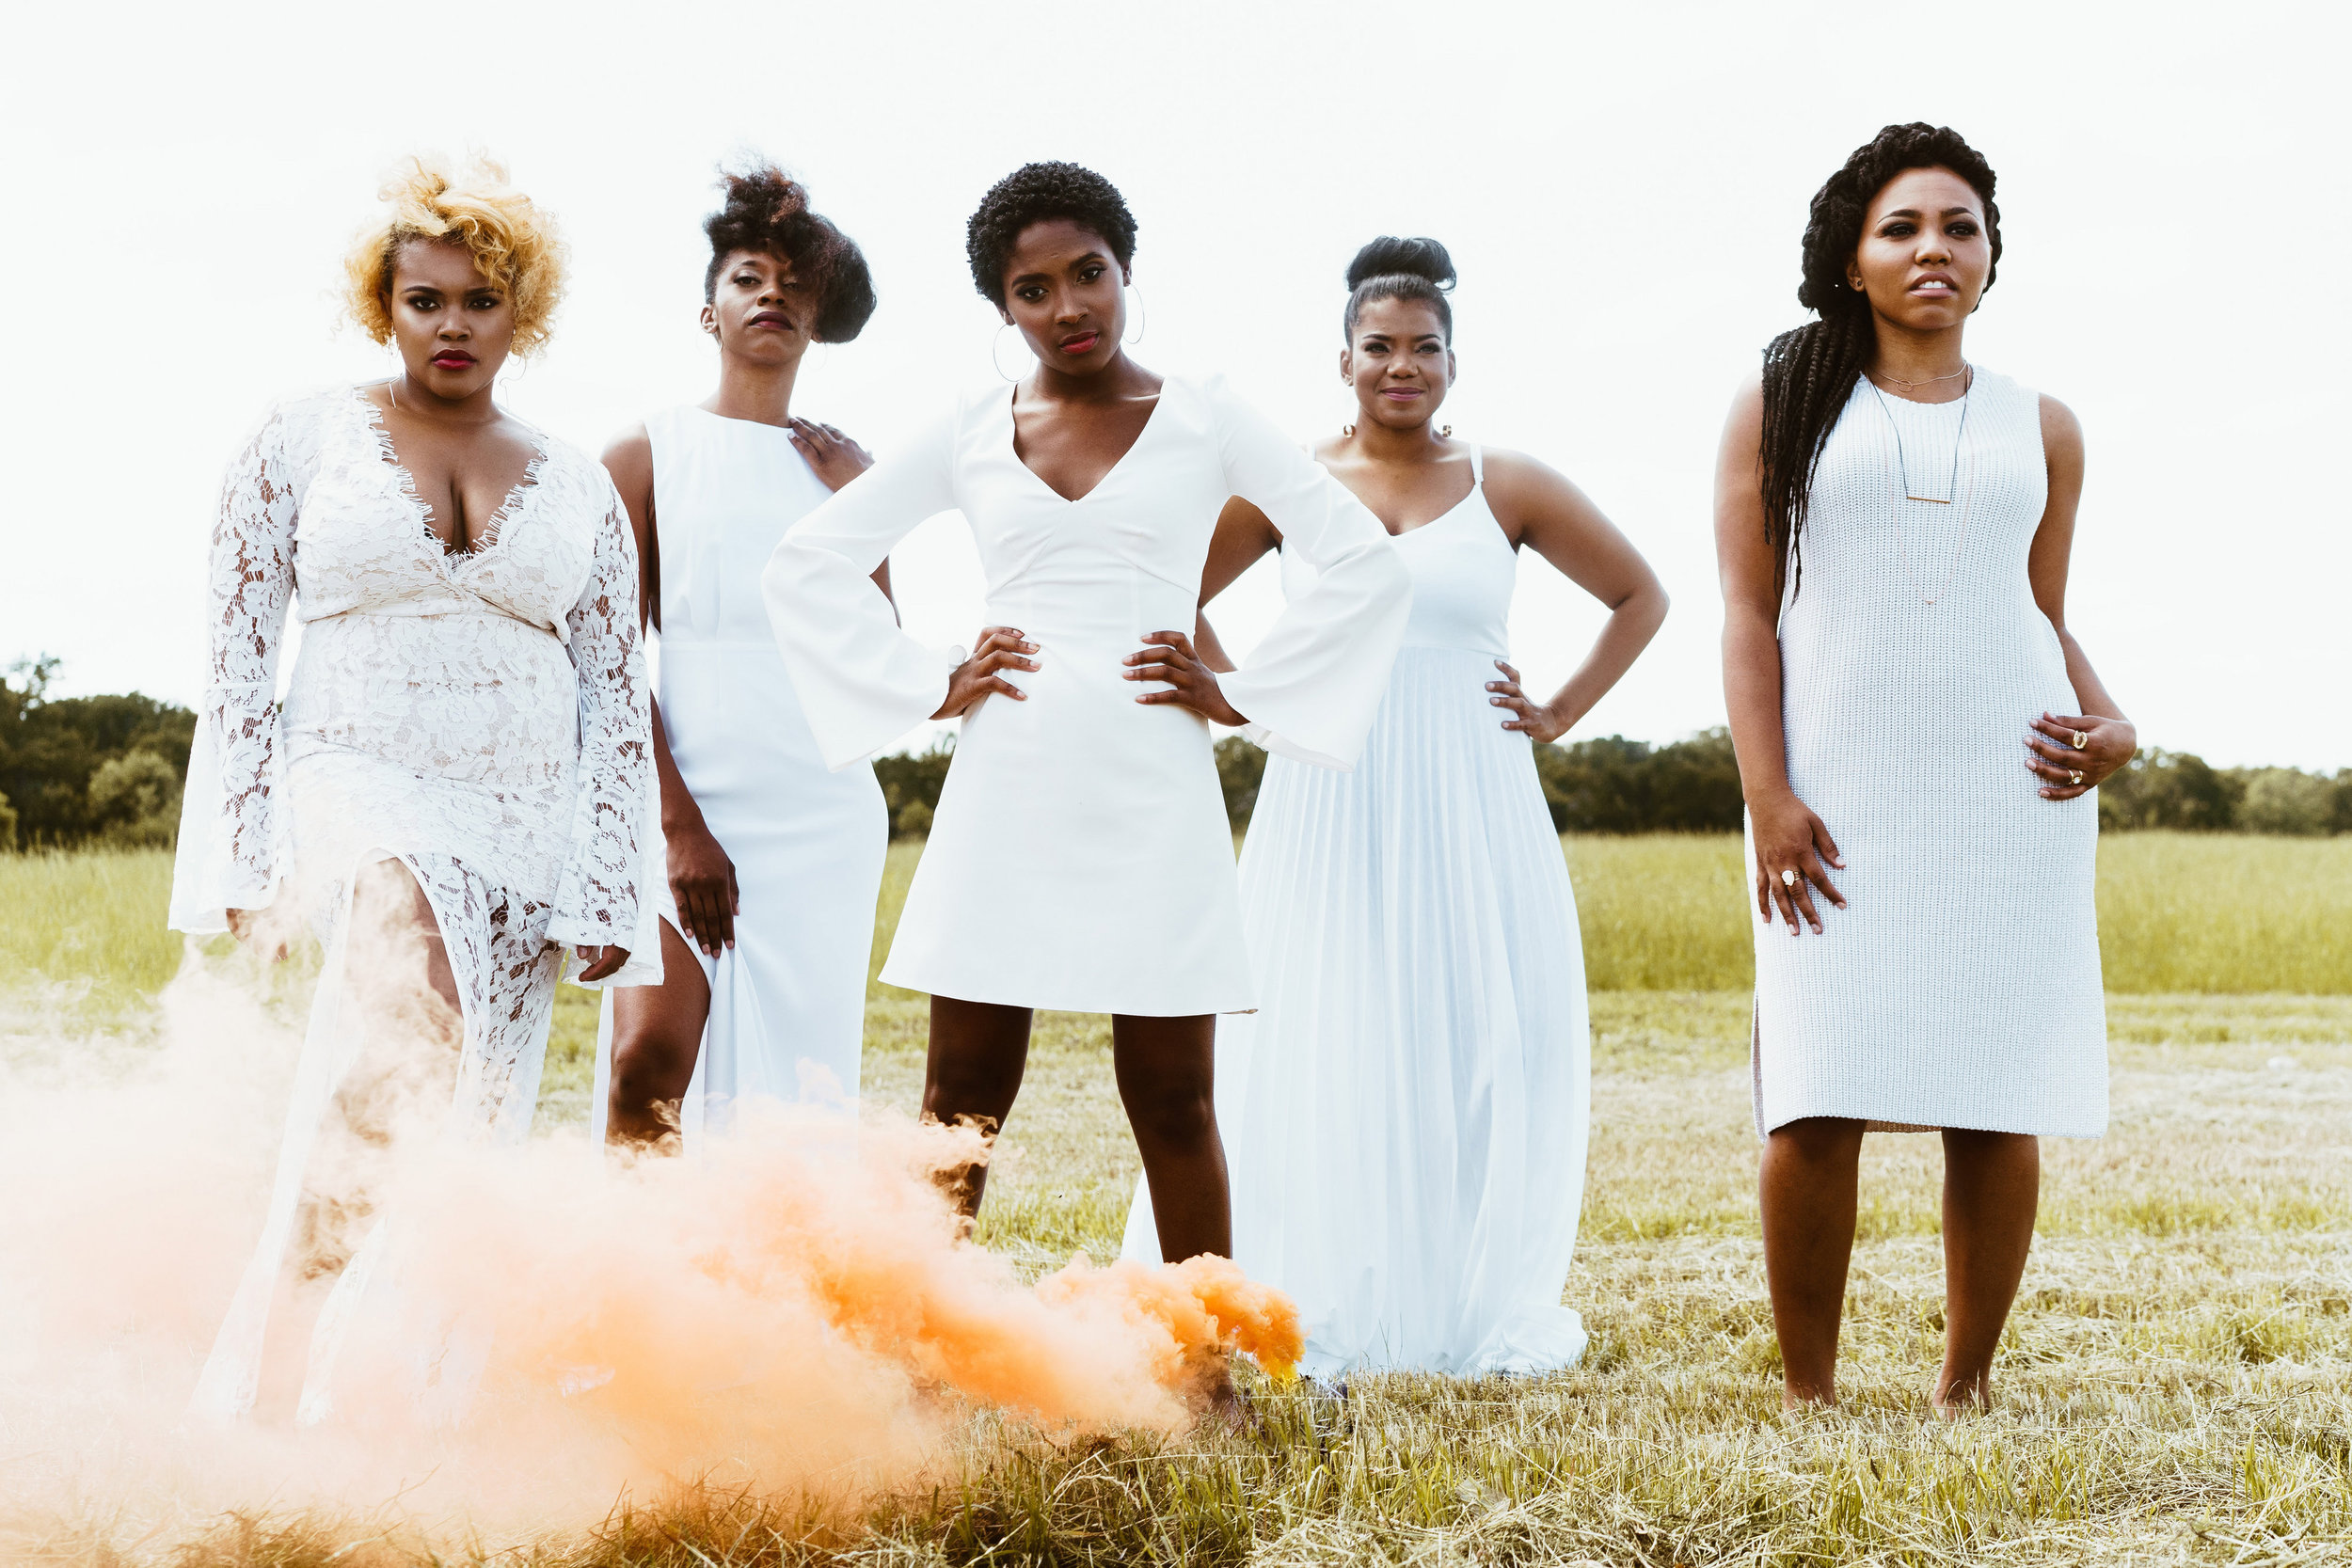 WE'RE ON A MISSION TO... - EDUCATE, ENCOURAGE, AND INSPIRE PETITE WOMEN TO EMBRACE THEIR UNIQUE BEAUTY!STYLE WELL. L IVE WELL . BE BRAVE .